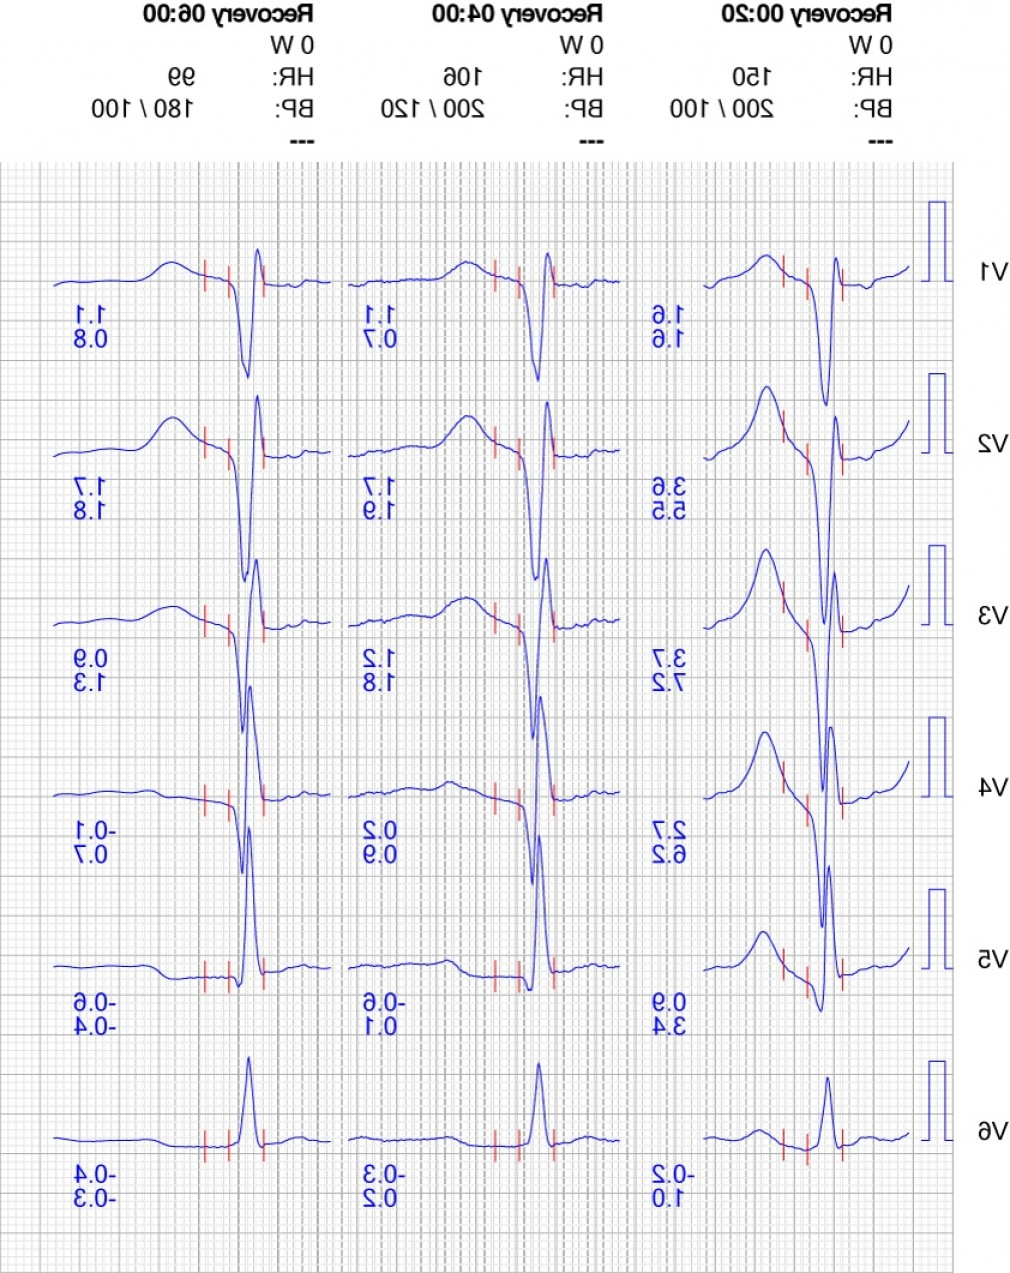 Positive EKG Vectors: Exercise Stress Test Treadmill Ecg Indications Background